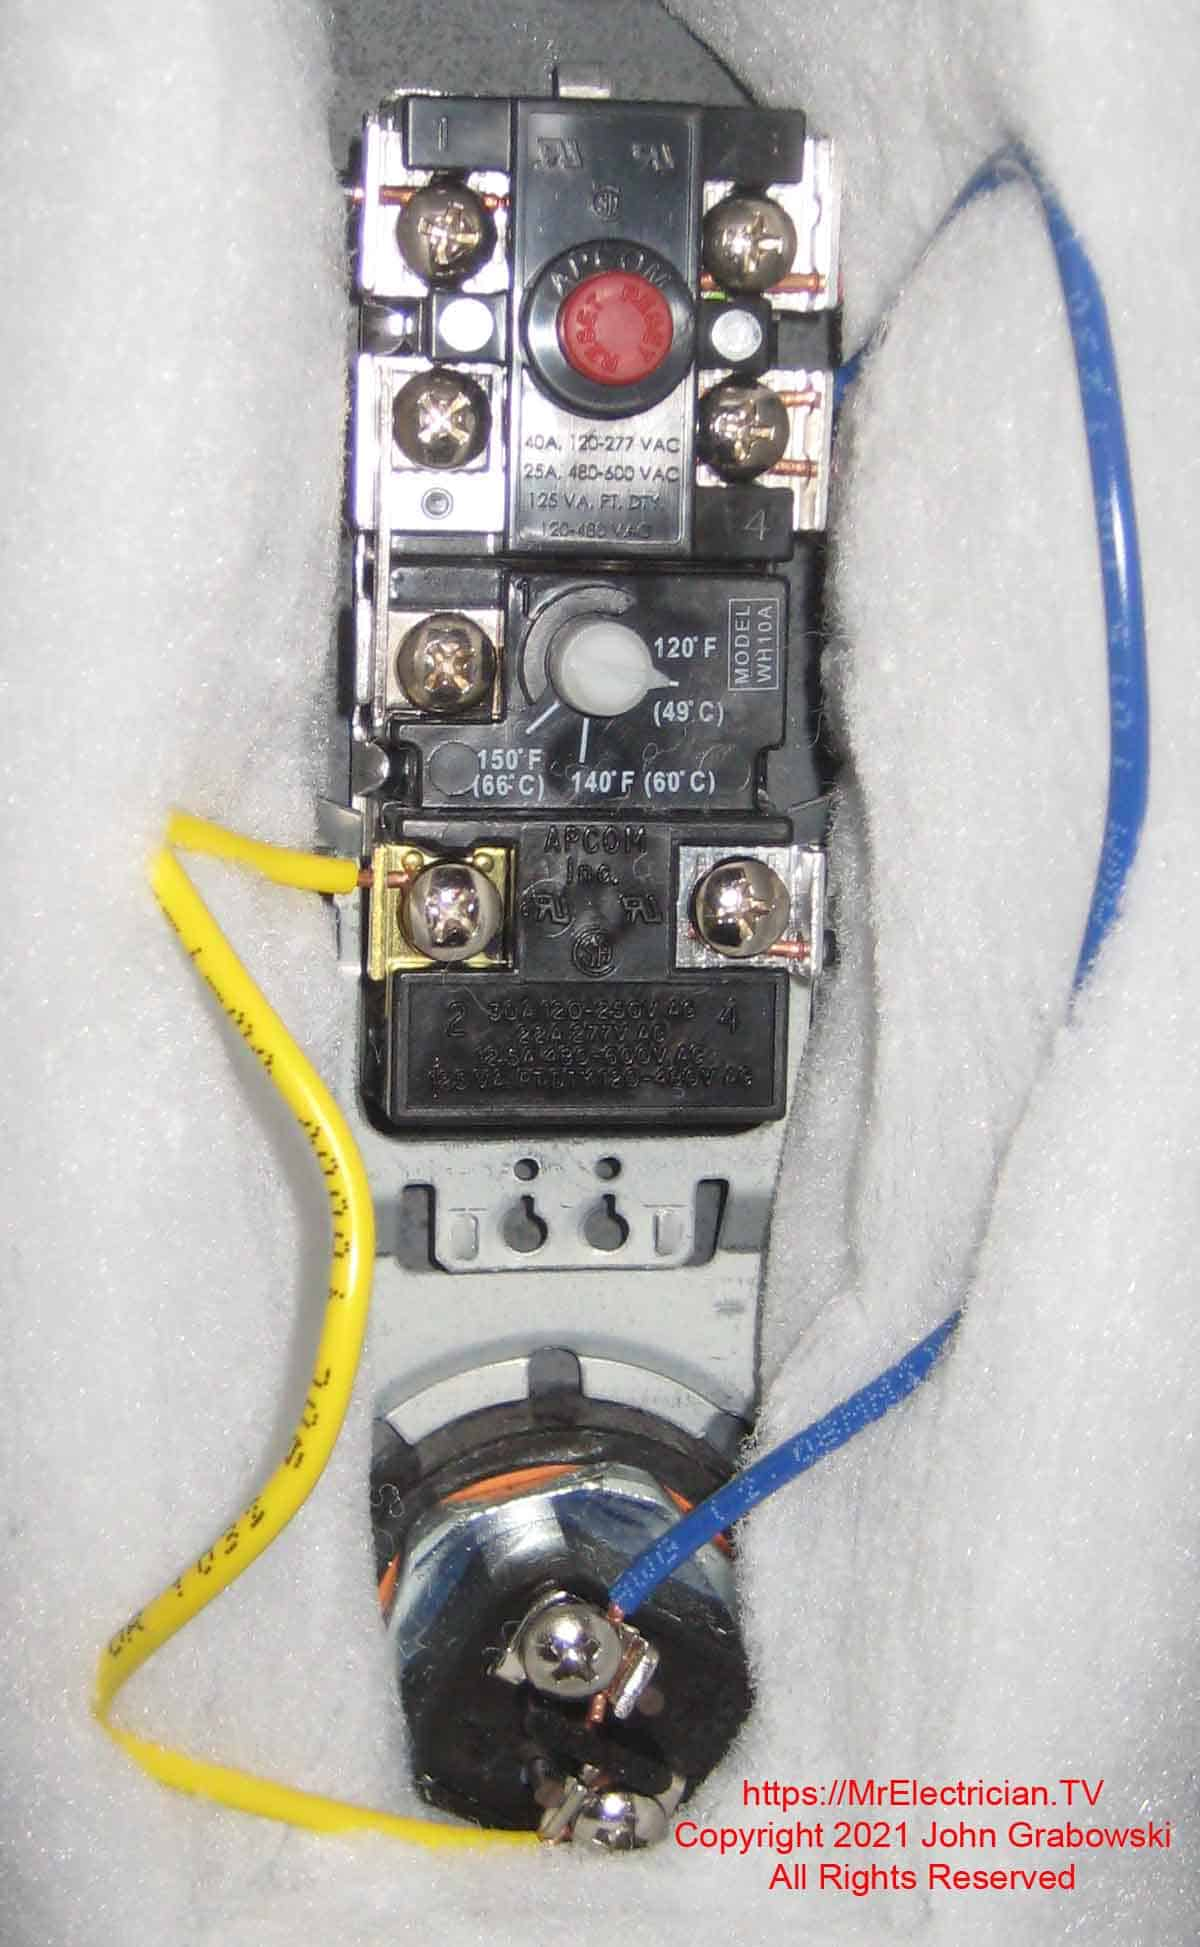 The upper thermostat and heating element of an electric water heater